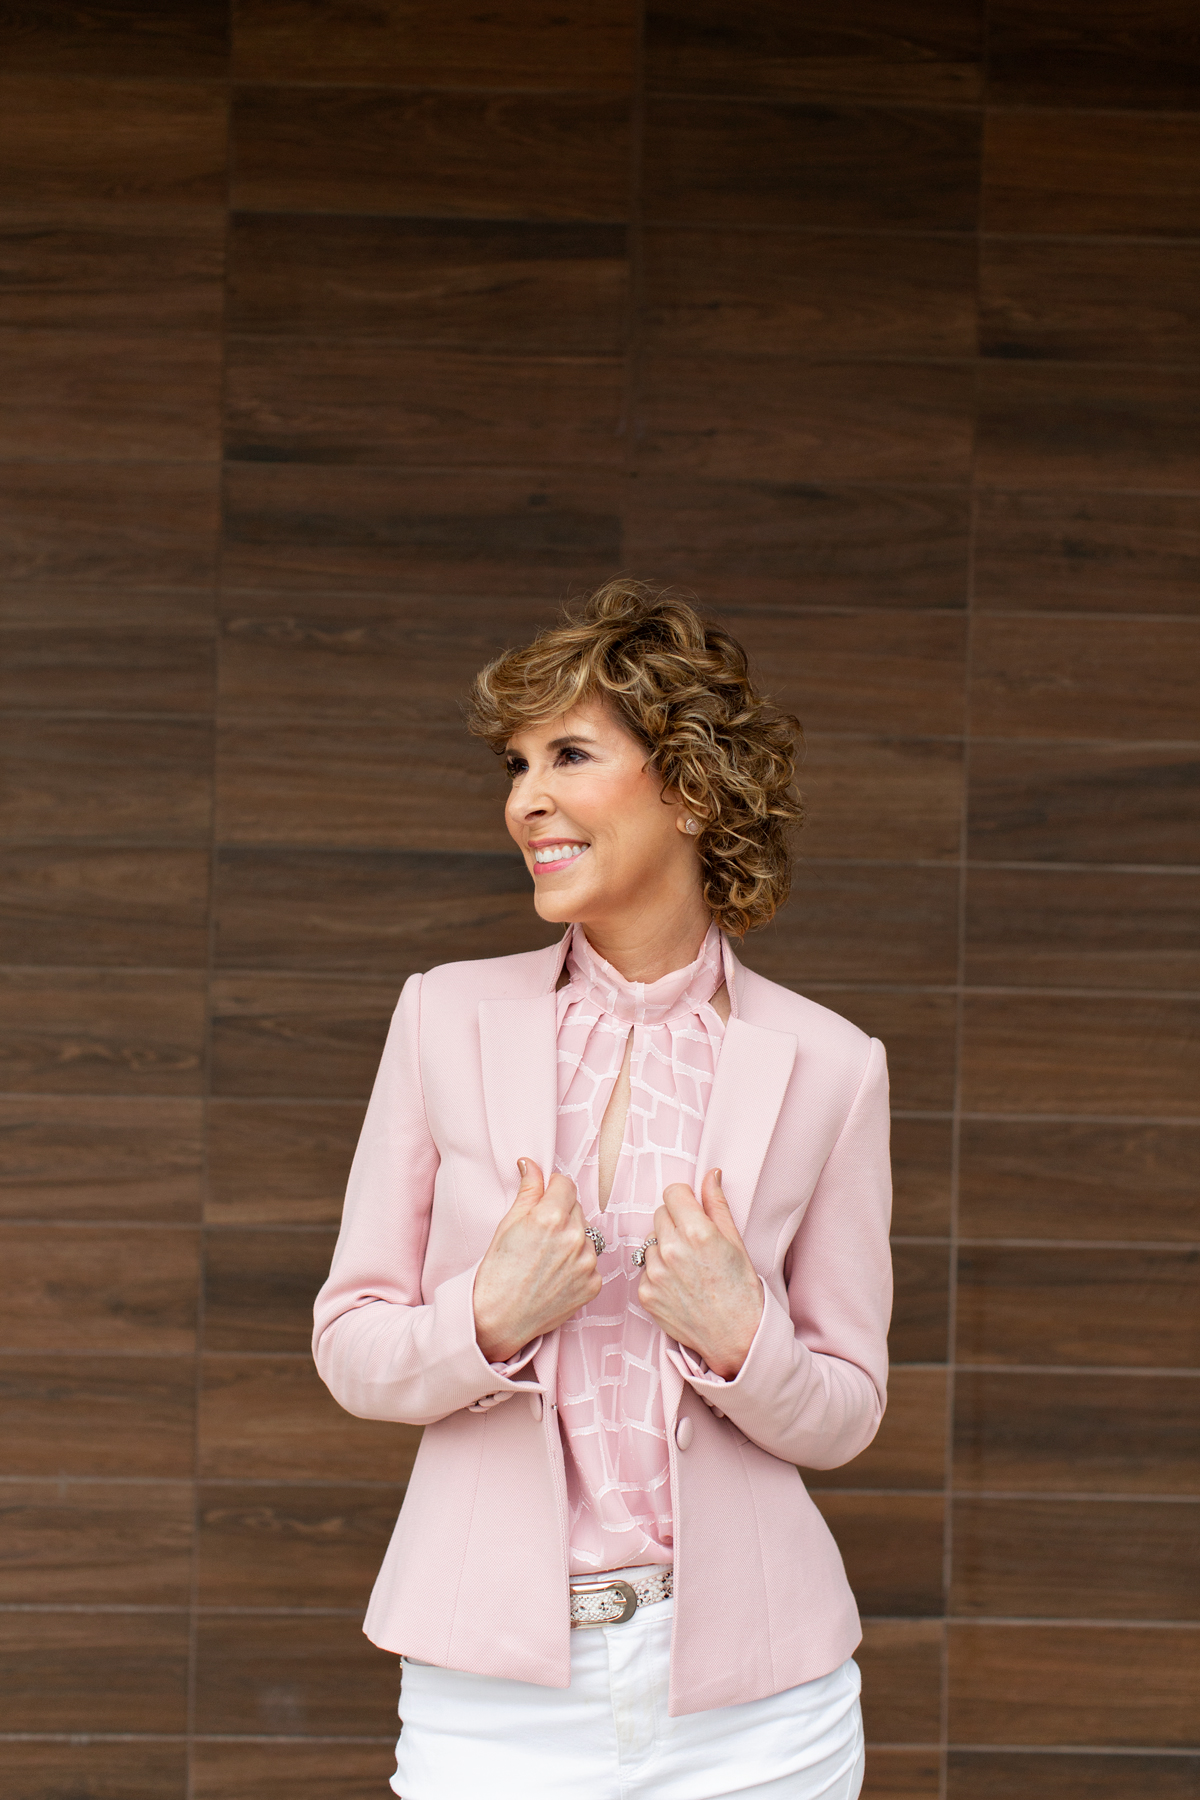 woman over fifty wearing pink top and blazer standing in front of a brown wall and looking to the side